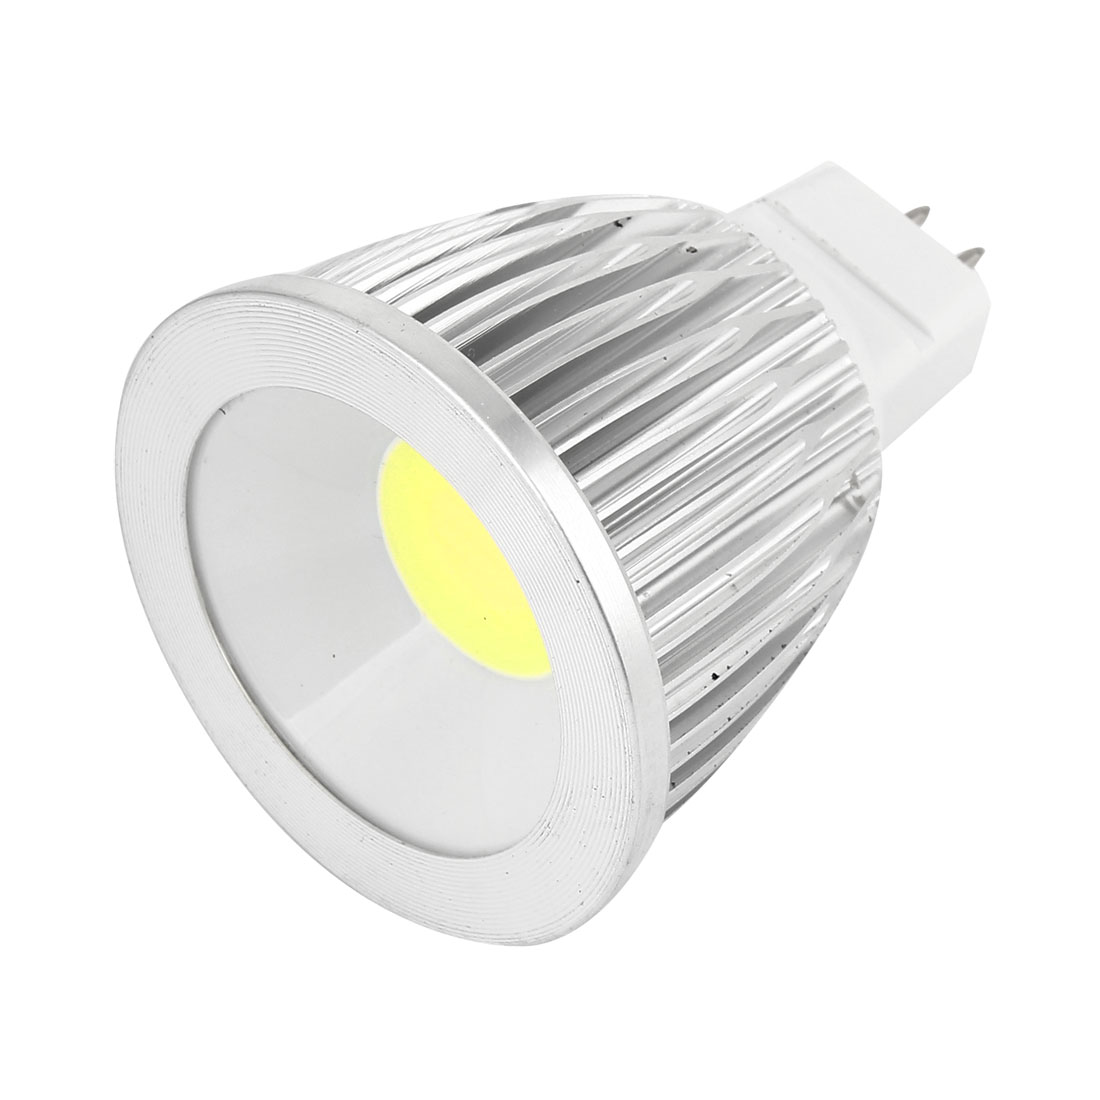 AC 12V 9W 600-650LM MR16 Dimmable Cool White Light COB LED Downlight Spotlight